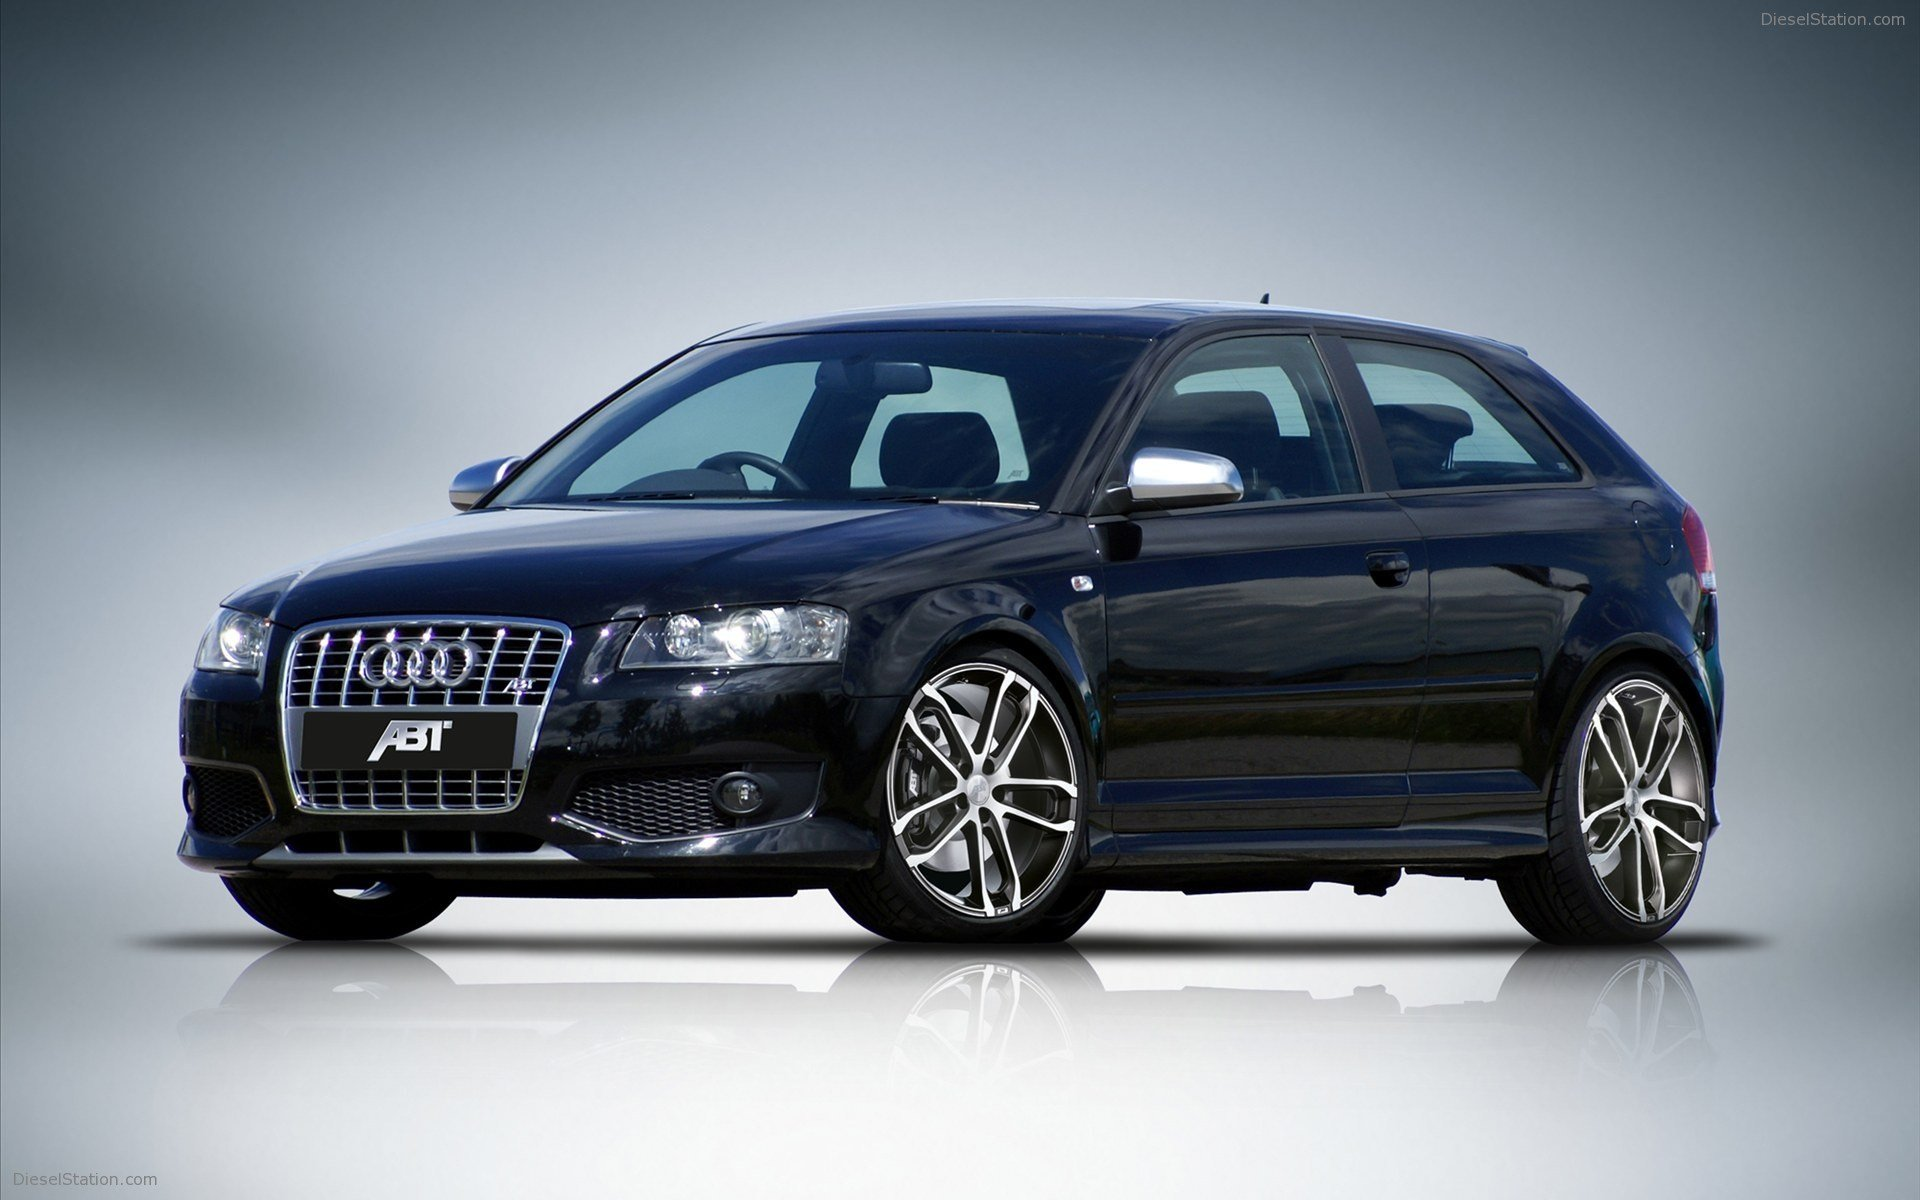 Latest Abt Audi S3 2007 Widescreen Exotic Car Wallpapers 02 Of 6 Free Download